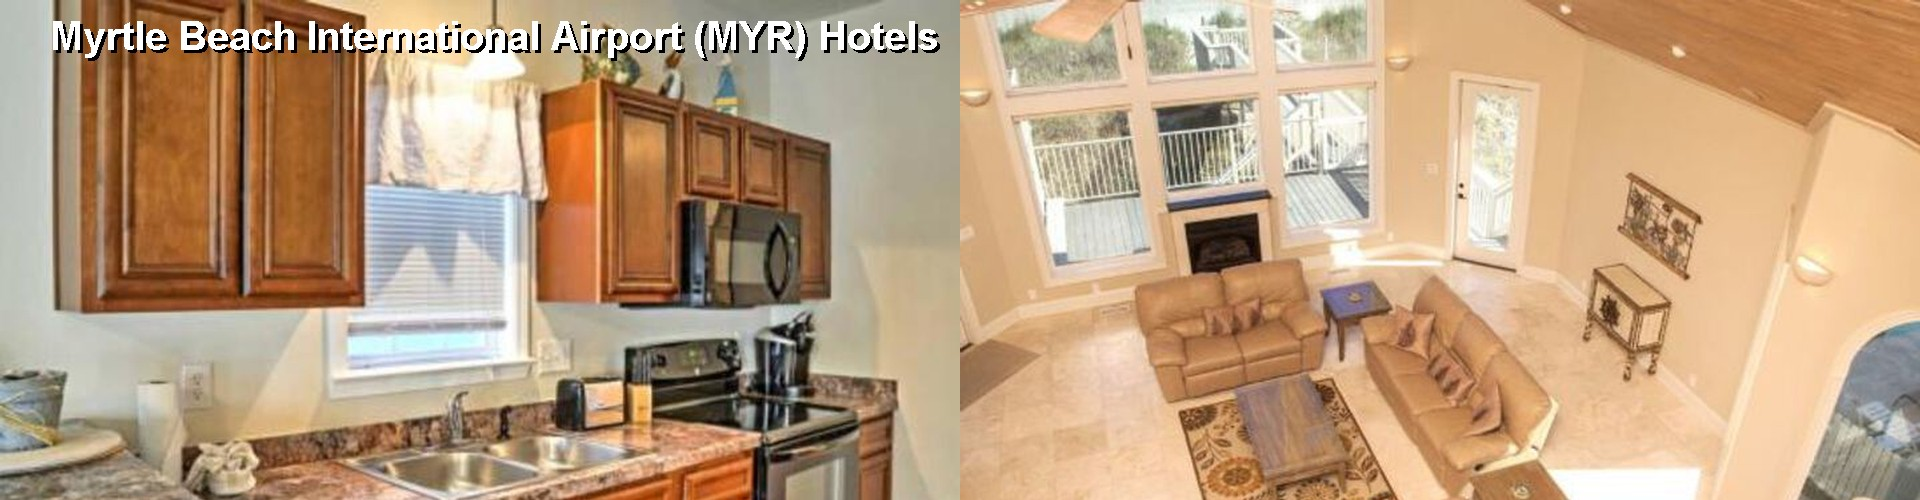 5 Best Hotels near Myrtle Beach International Airport (MYR)